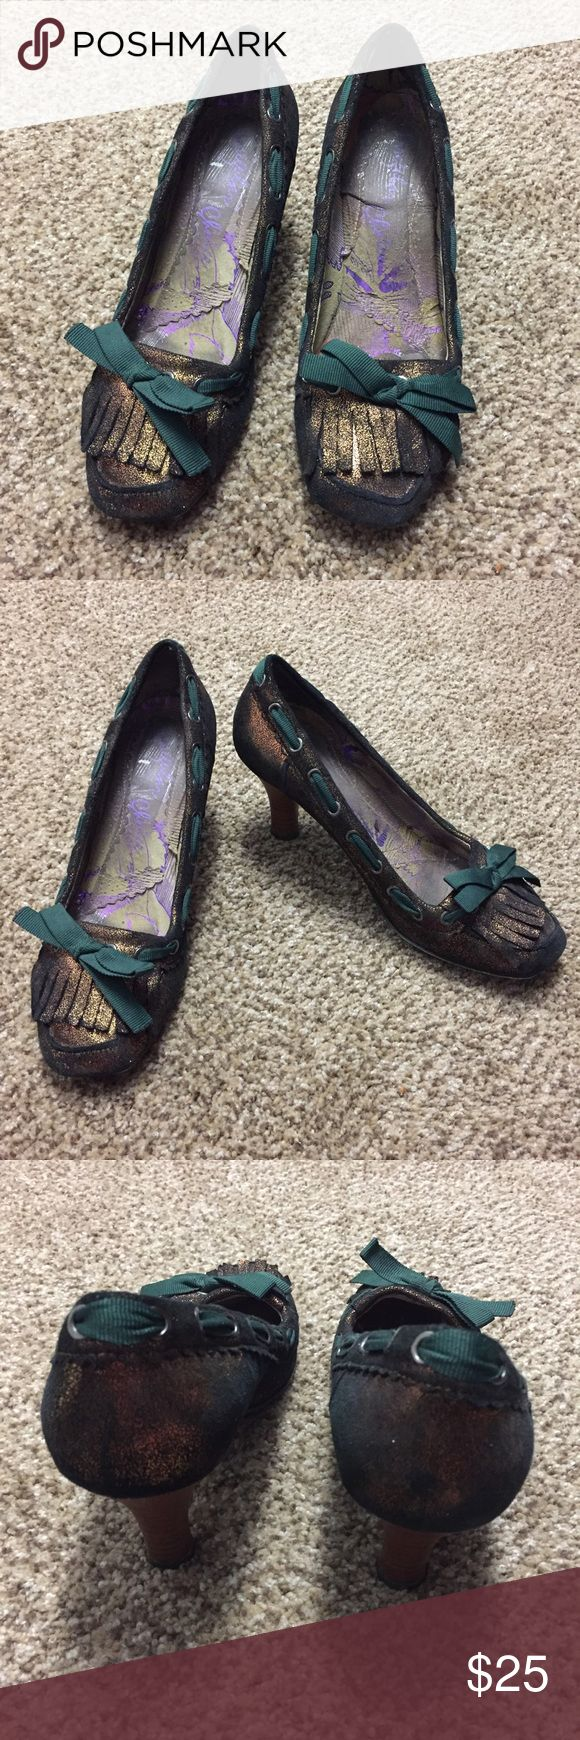 Irregular Choice Heels Great condition! Size 10 Irregular Choice heels still have plenty of wear left in them. Metallic brown color with green bow/accents. Super comfy and fun! Irregular Choice Shoes Heels